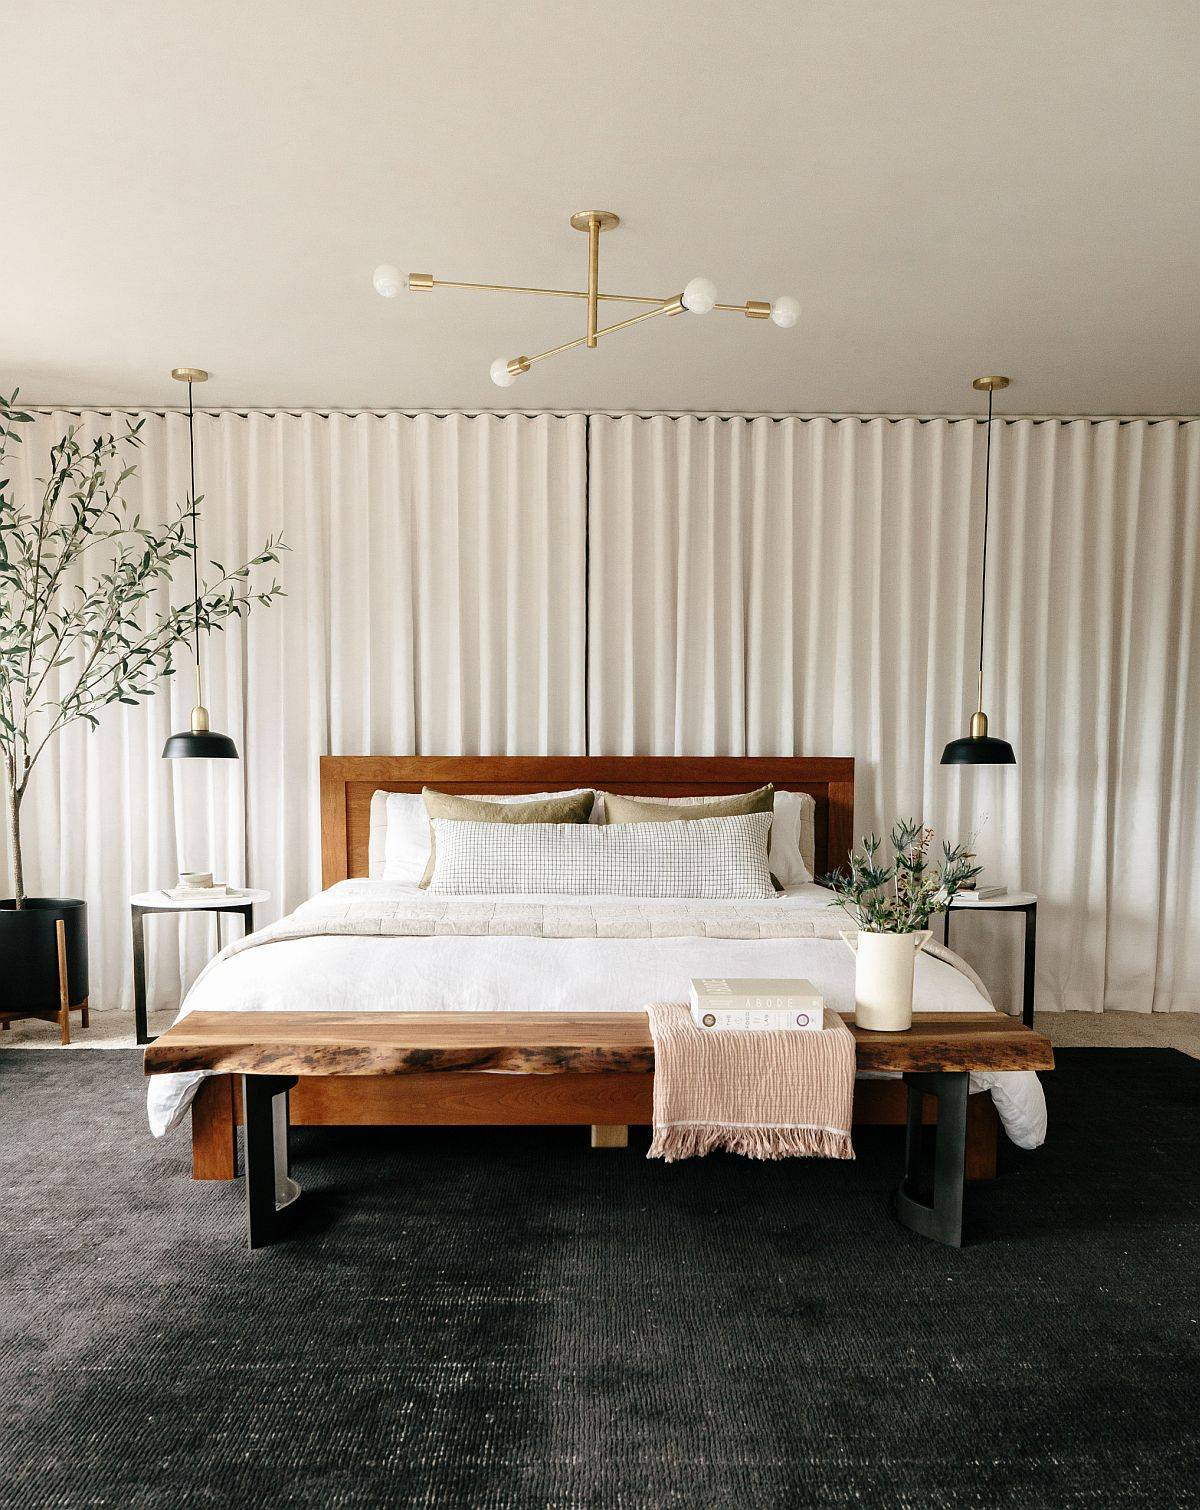 Naturel-edge-table-at-the-foot-of-the-bed-warm-textures-and-lovely-simple-backdrop-create-a-cozy-bedroom-80382